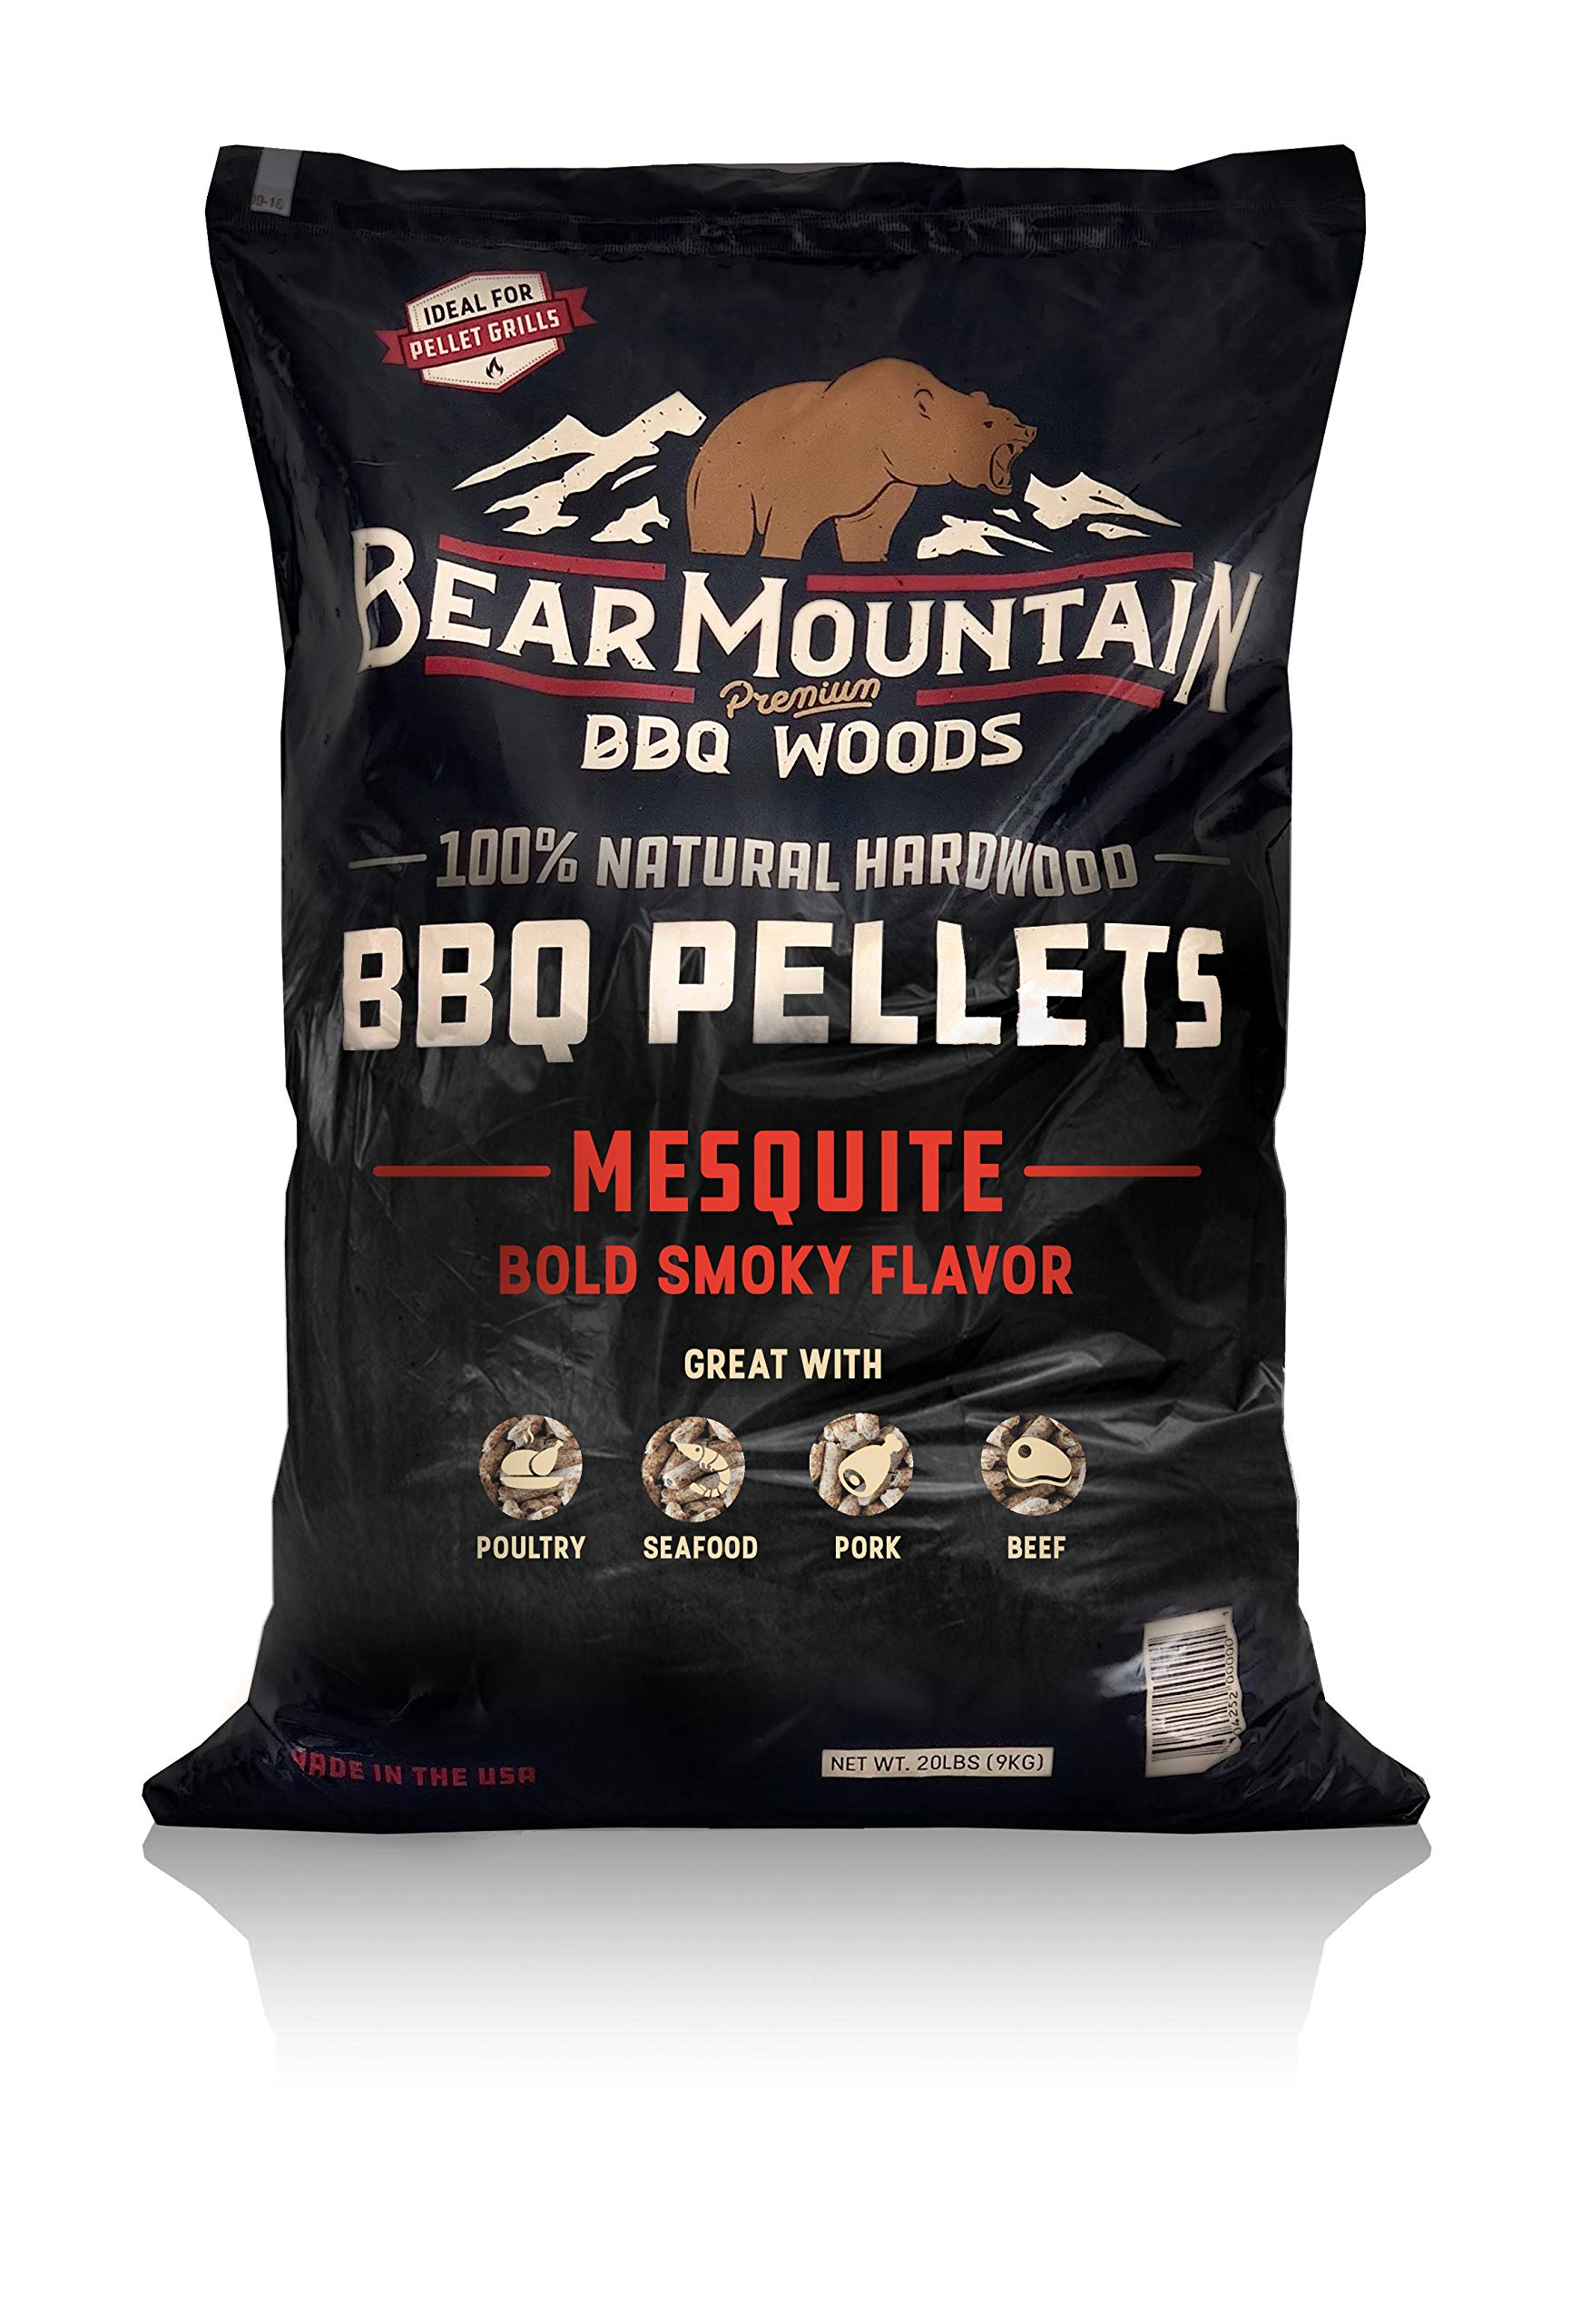 Bear Mountain BBQ 100% All-Natural Hardwood Pellets - Mesquite (20 lb. Bag) Perfect for Pellet Smokers, or Any Outdoor Grill | Rich, Smoky Wood-Fired Flavor by Bear Mountain BBQ